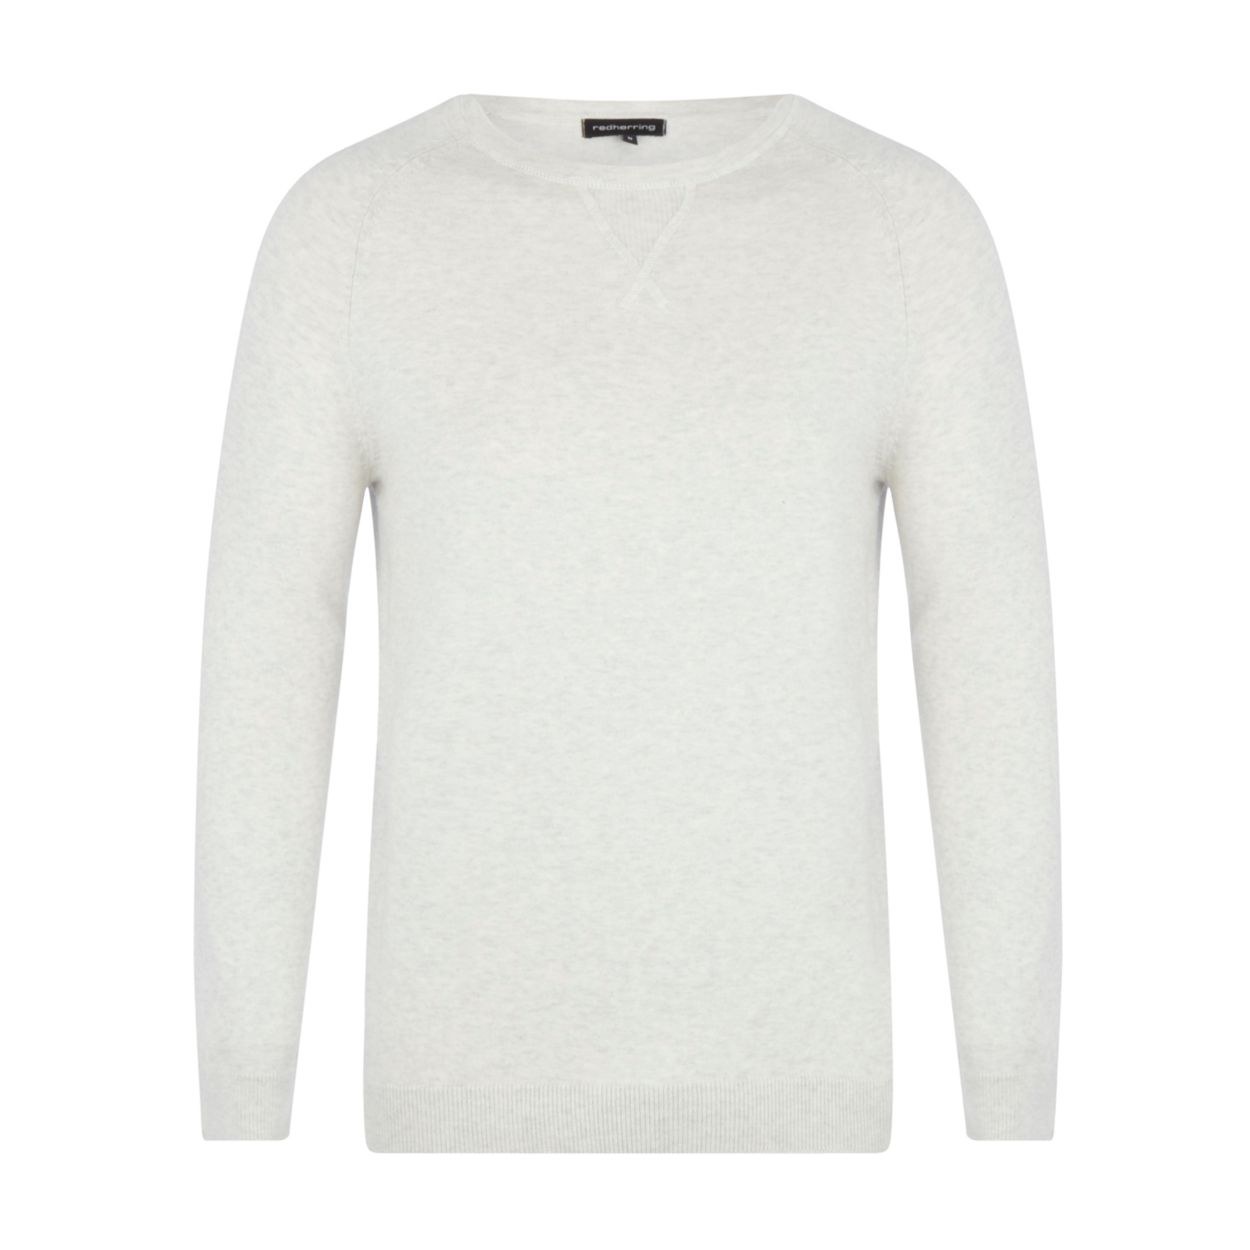 Red Herring Natural crew neck jumper